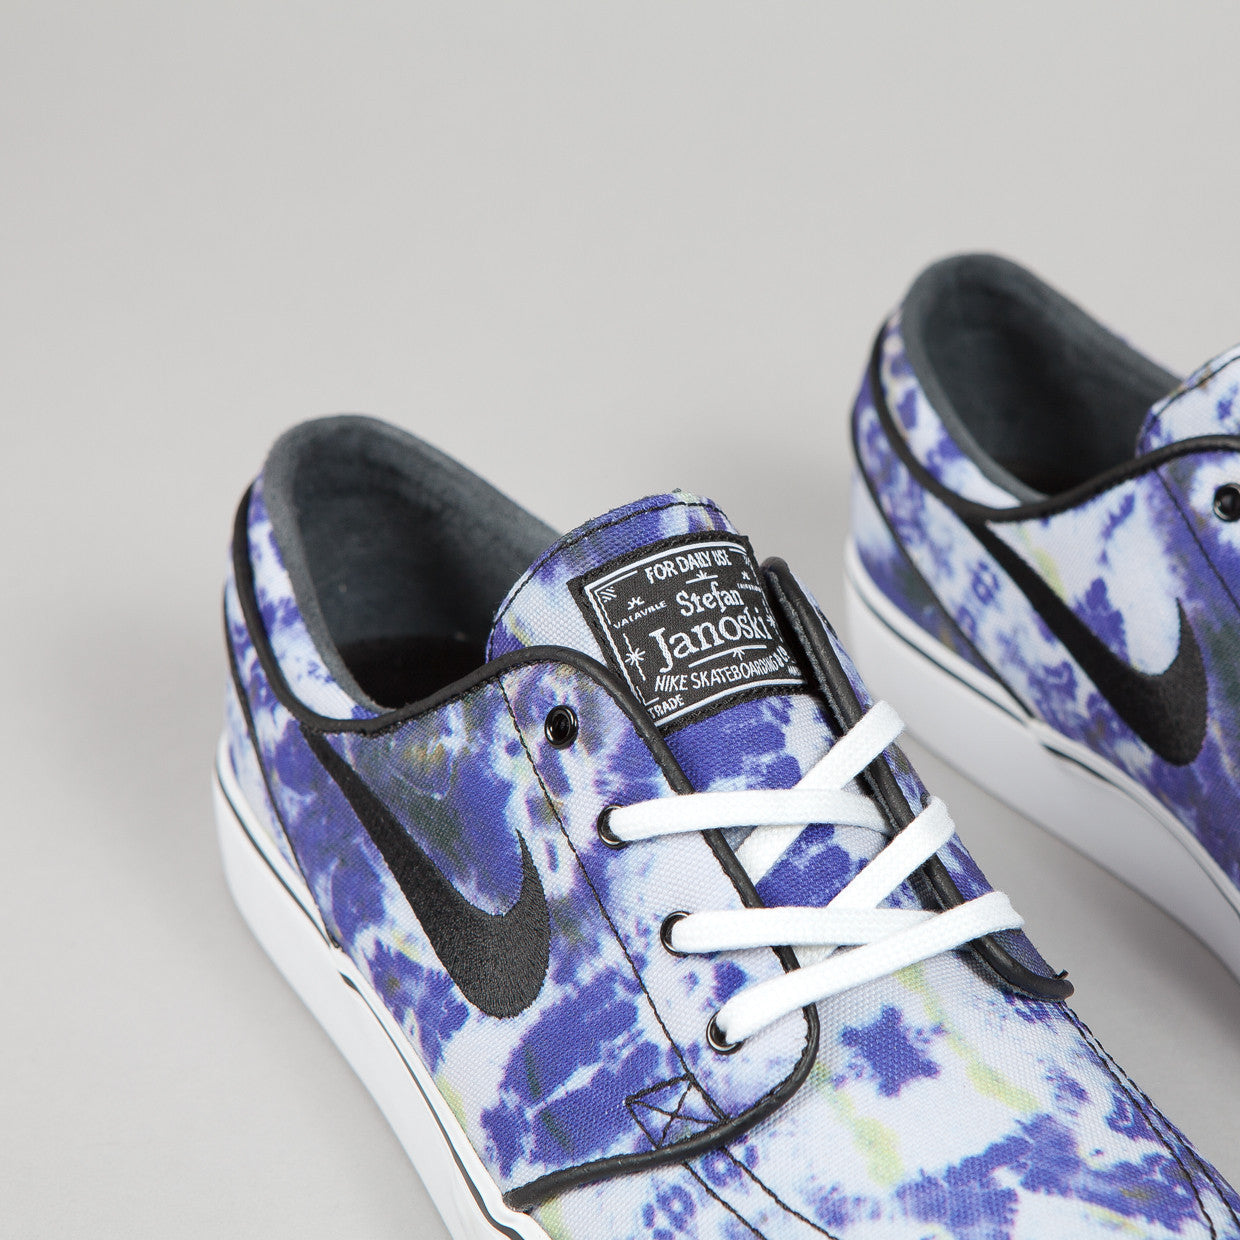 Nike SB Stefan Janoski PR QS White / Black - Deep Royal Blue (Tie Dye)